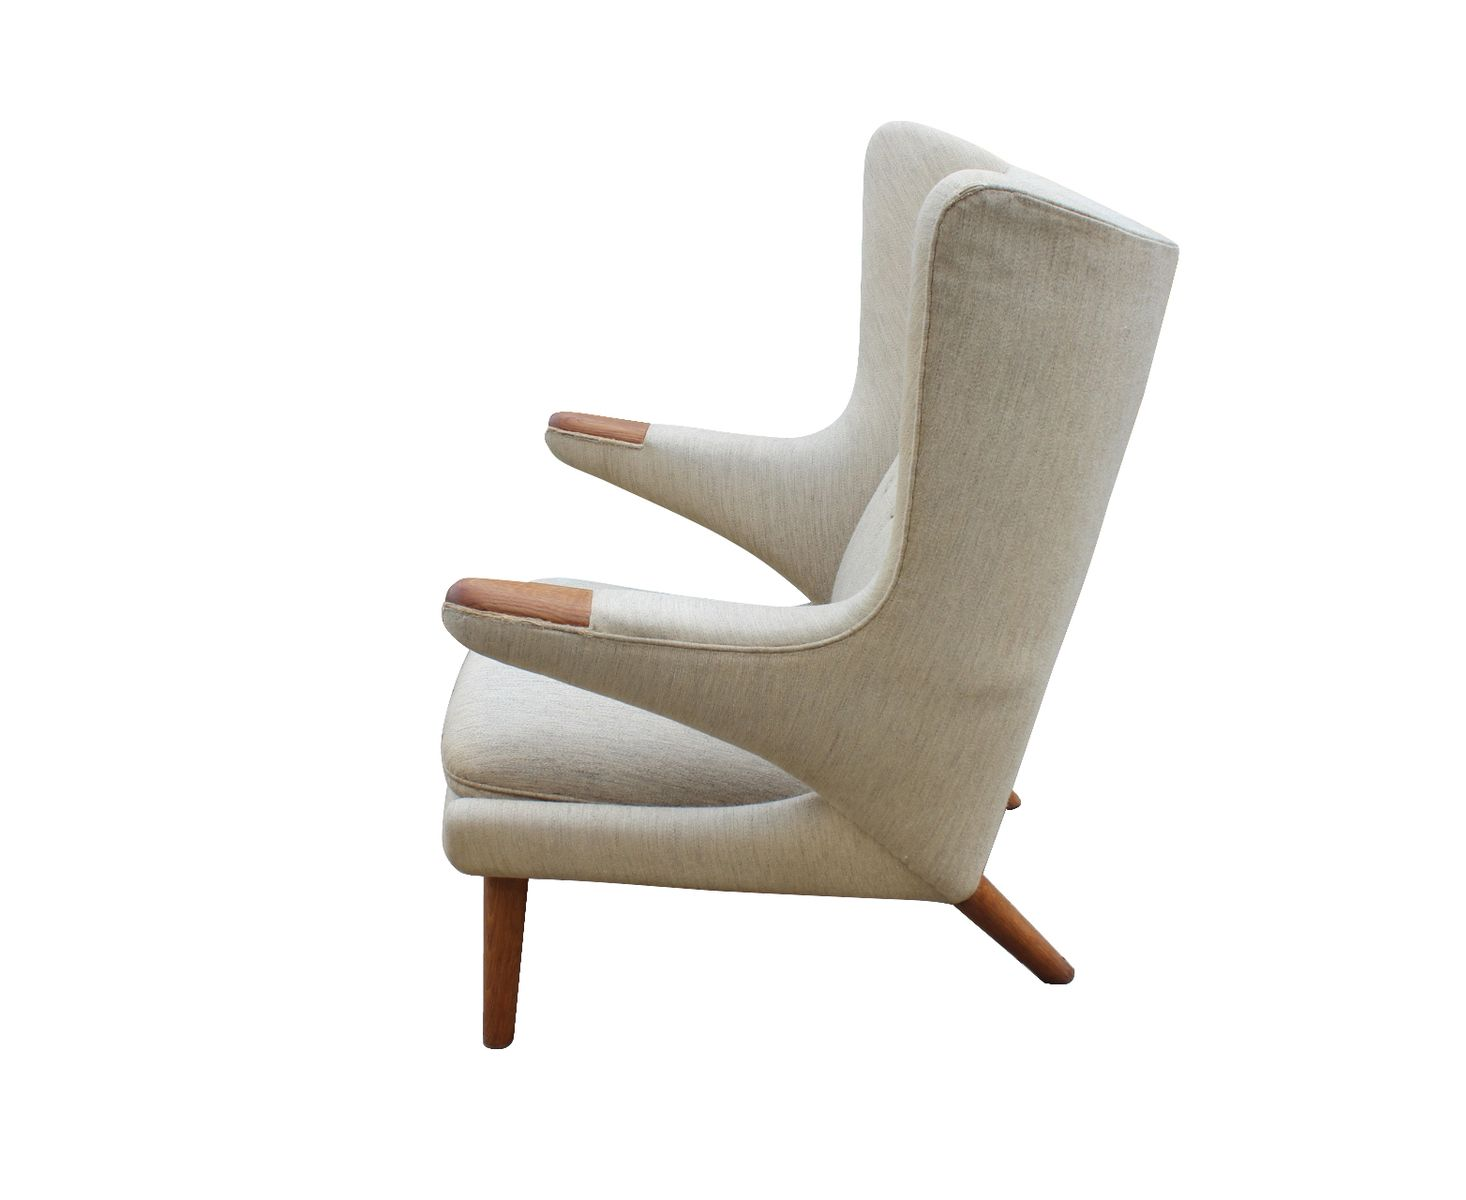 Model AP 19 Papa Bear Chair by Hans J Wegner for AP Furniture